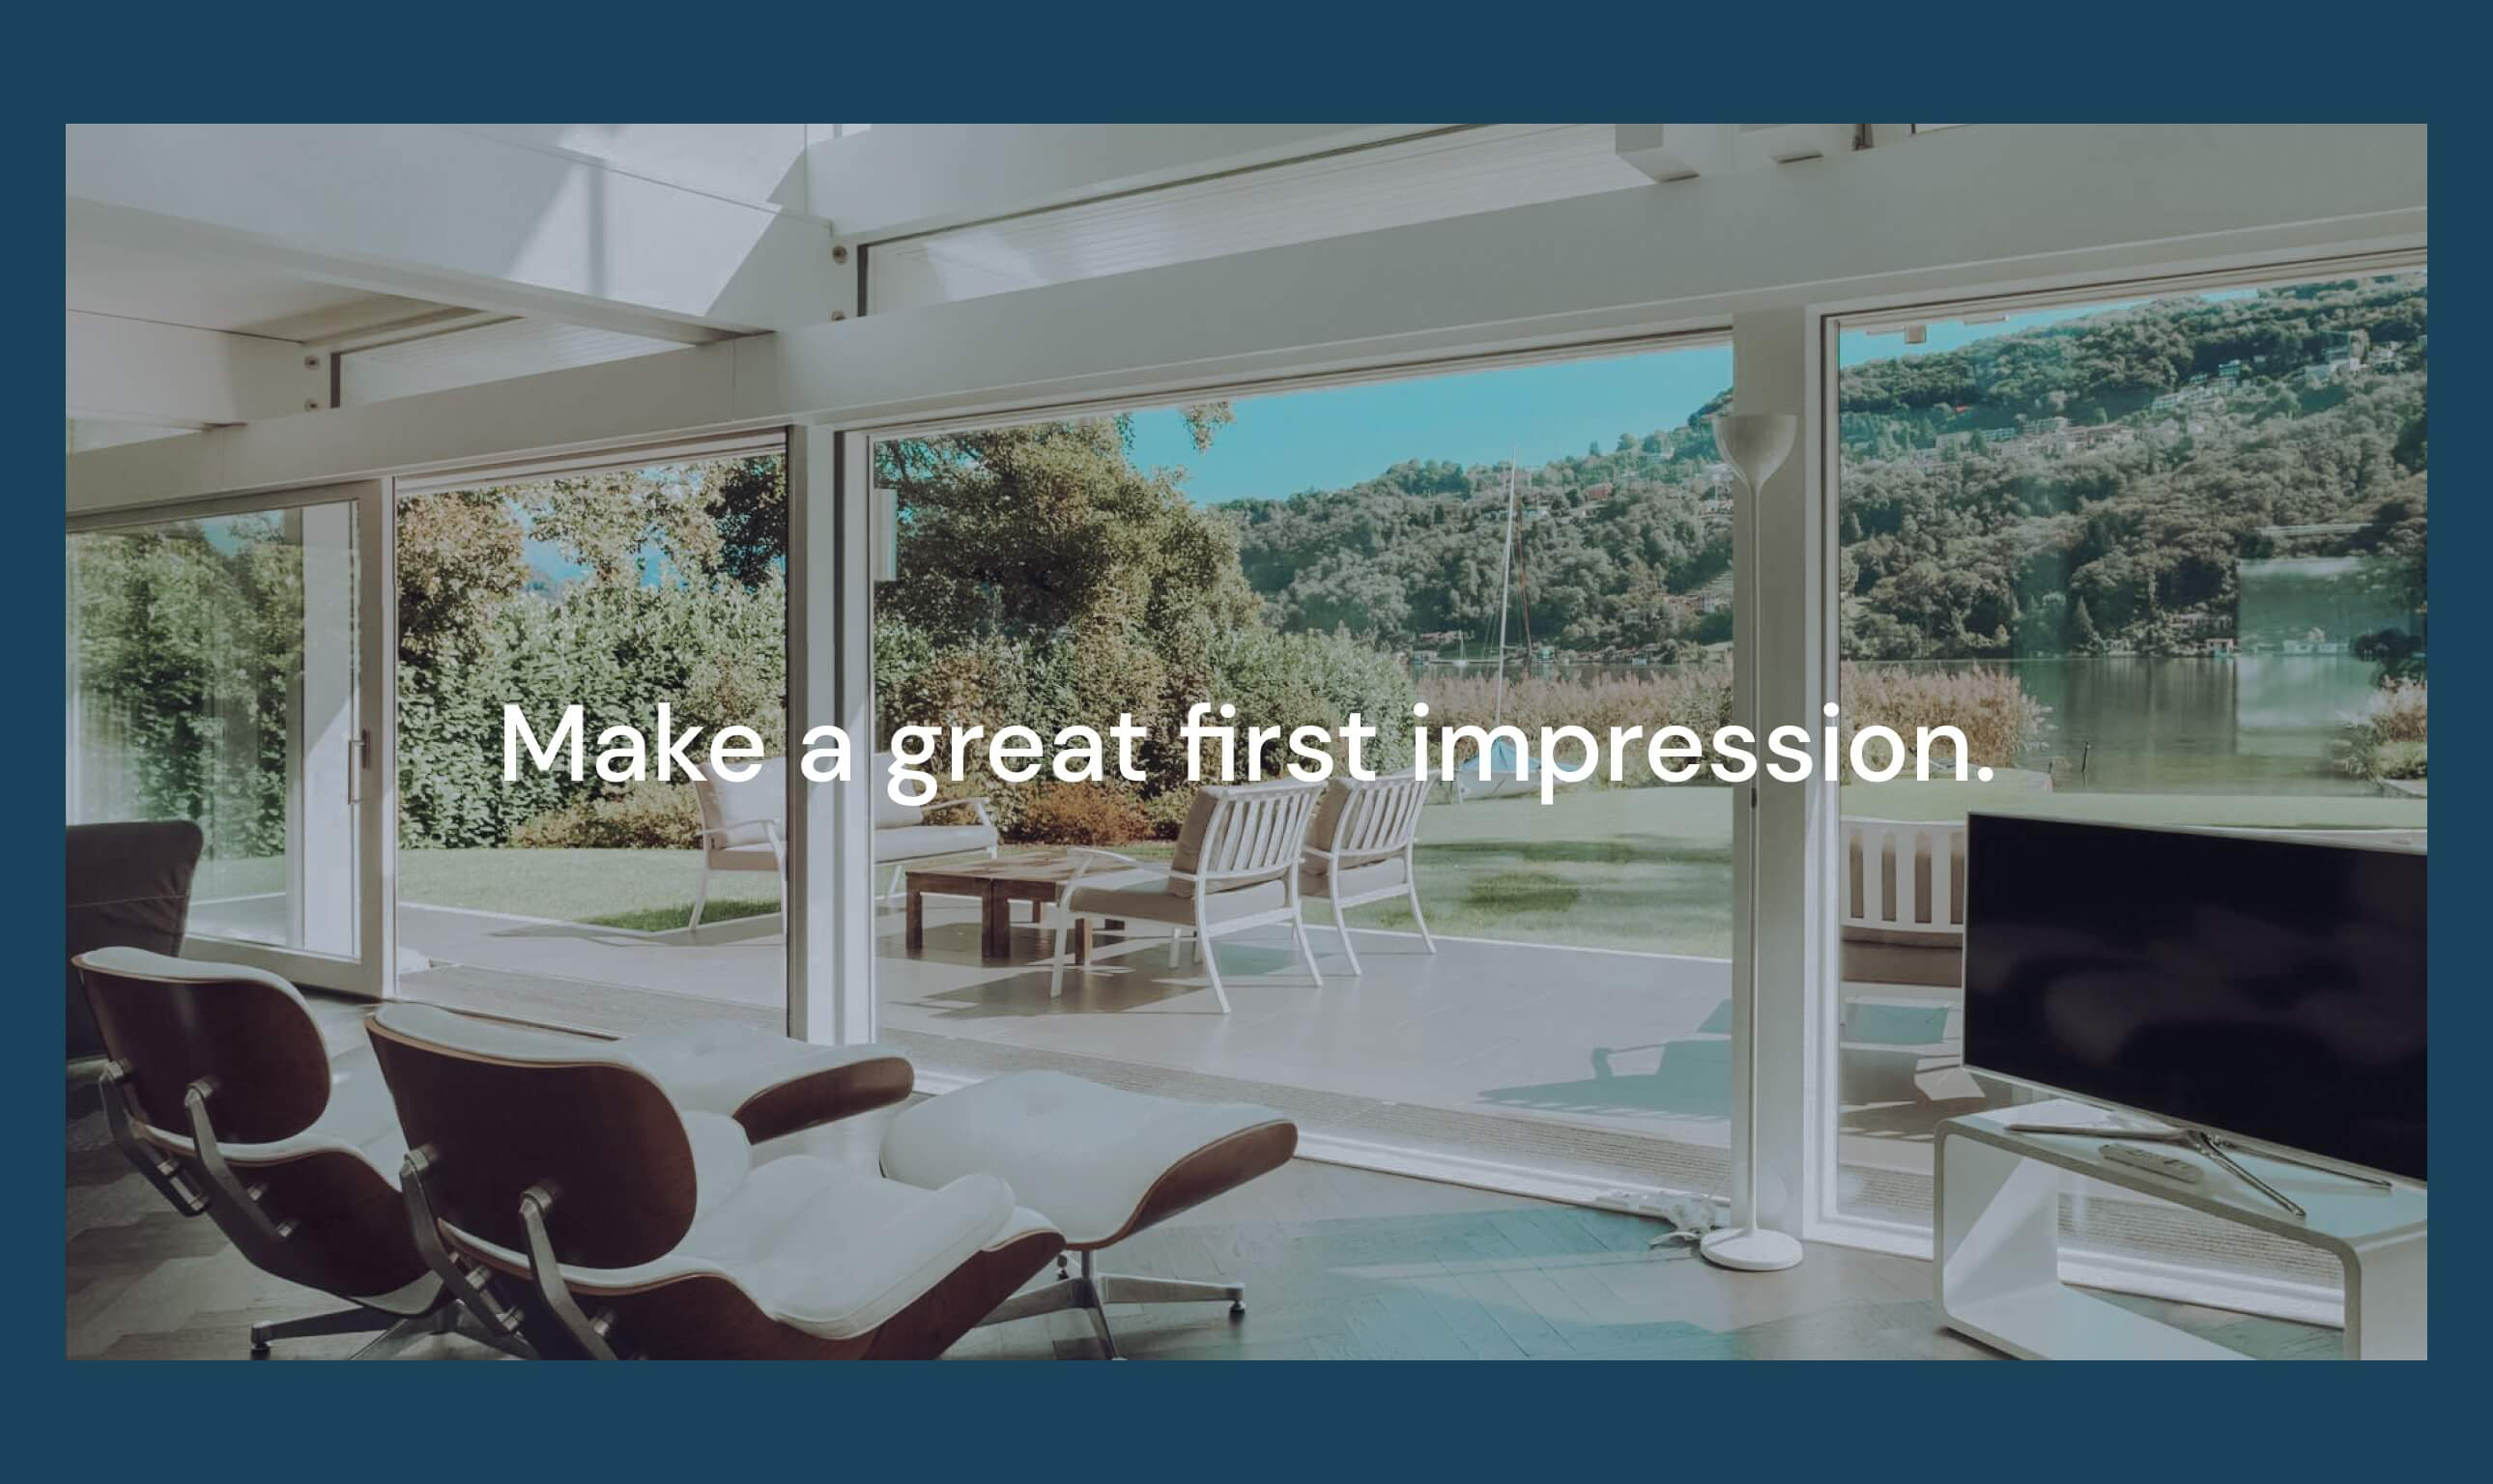 Fenestra claim on big windows with a Mountain view- Make a great first impression.